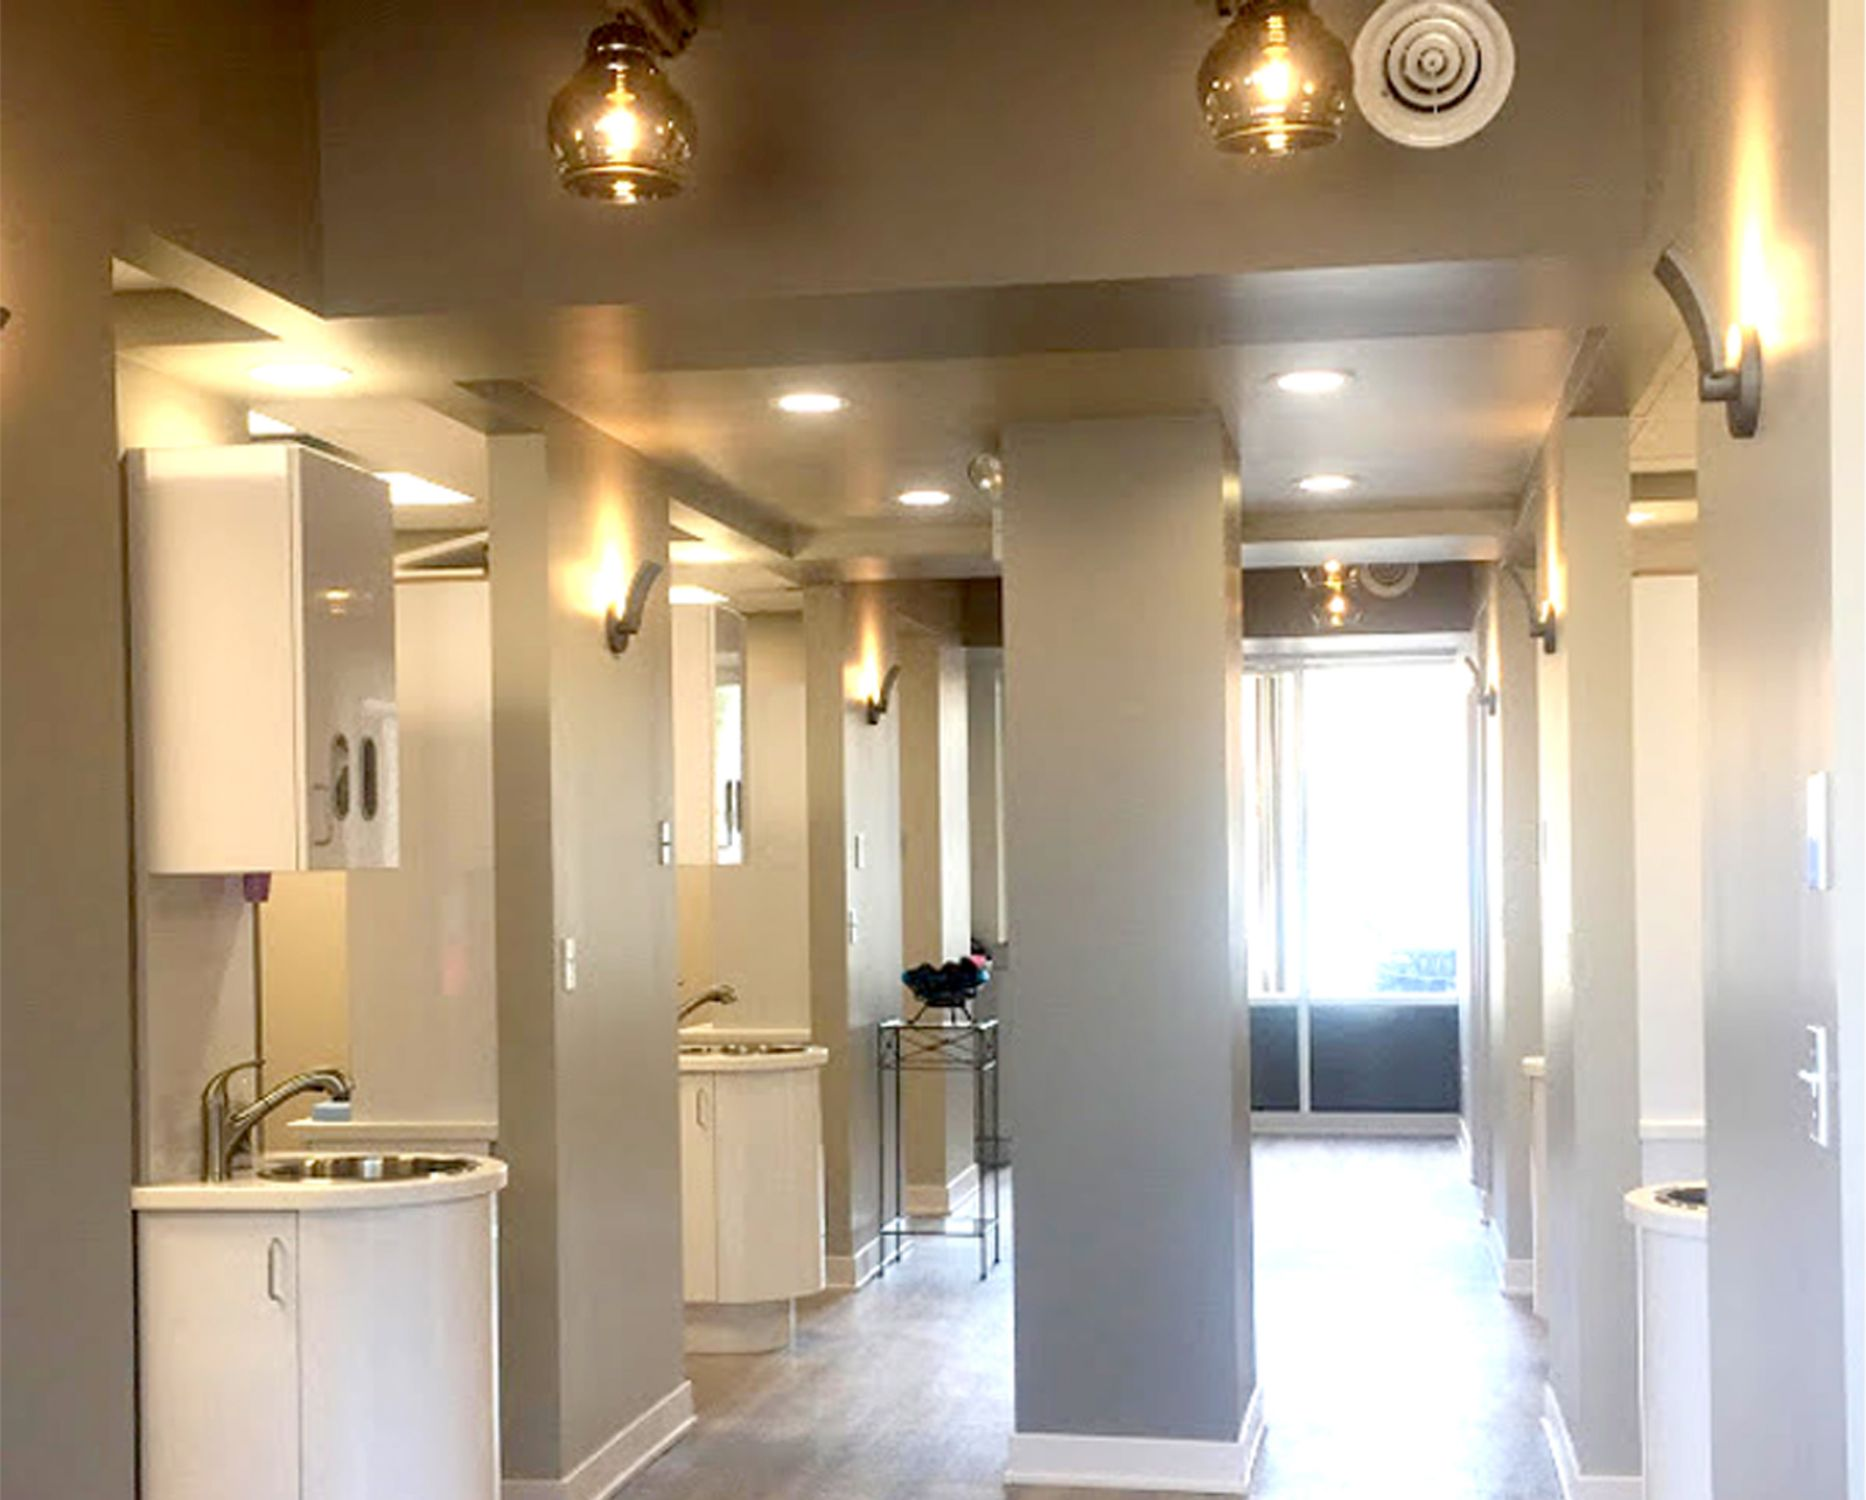 This is an image of our Dental Office we design. Click this image to view our commercial project page!